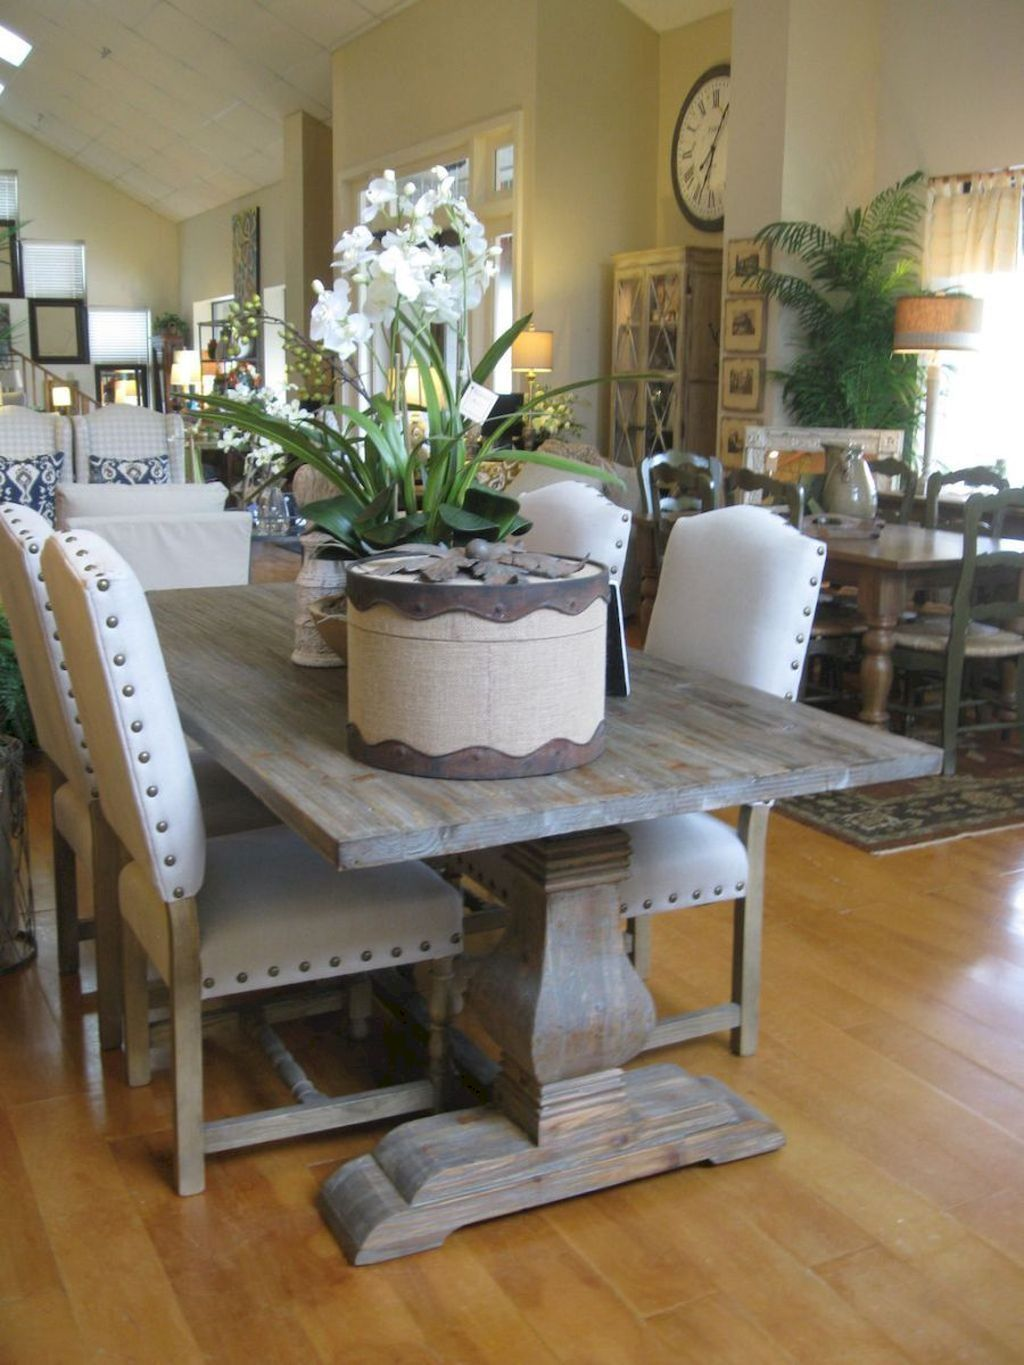 Popular Rustic Farmhouse Style Ideas For Dining Room Decor 23